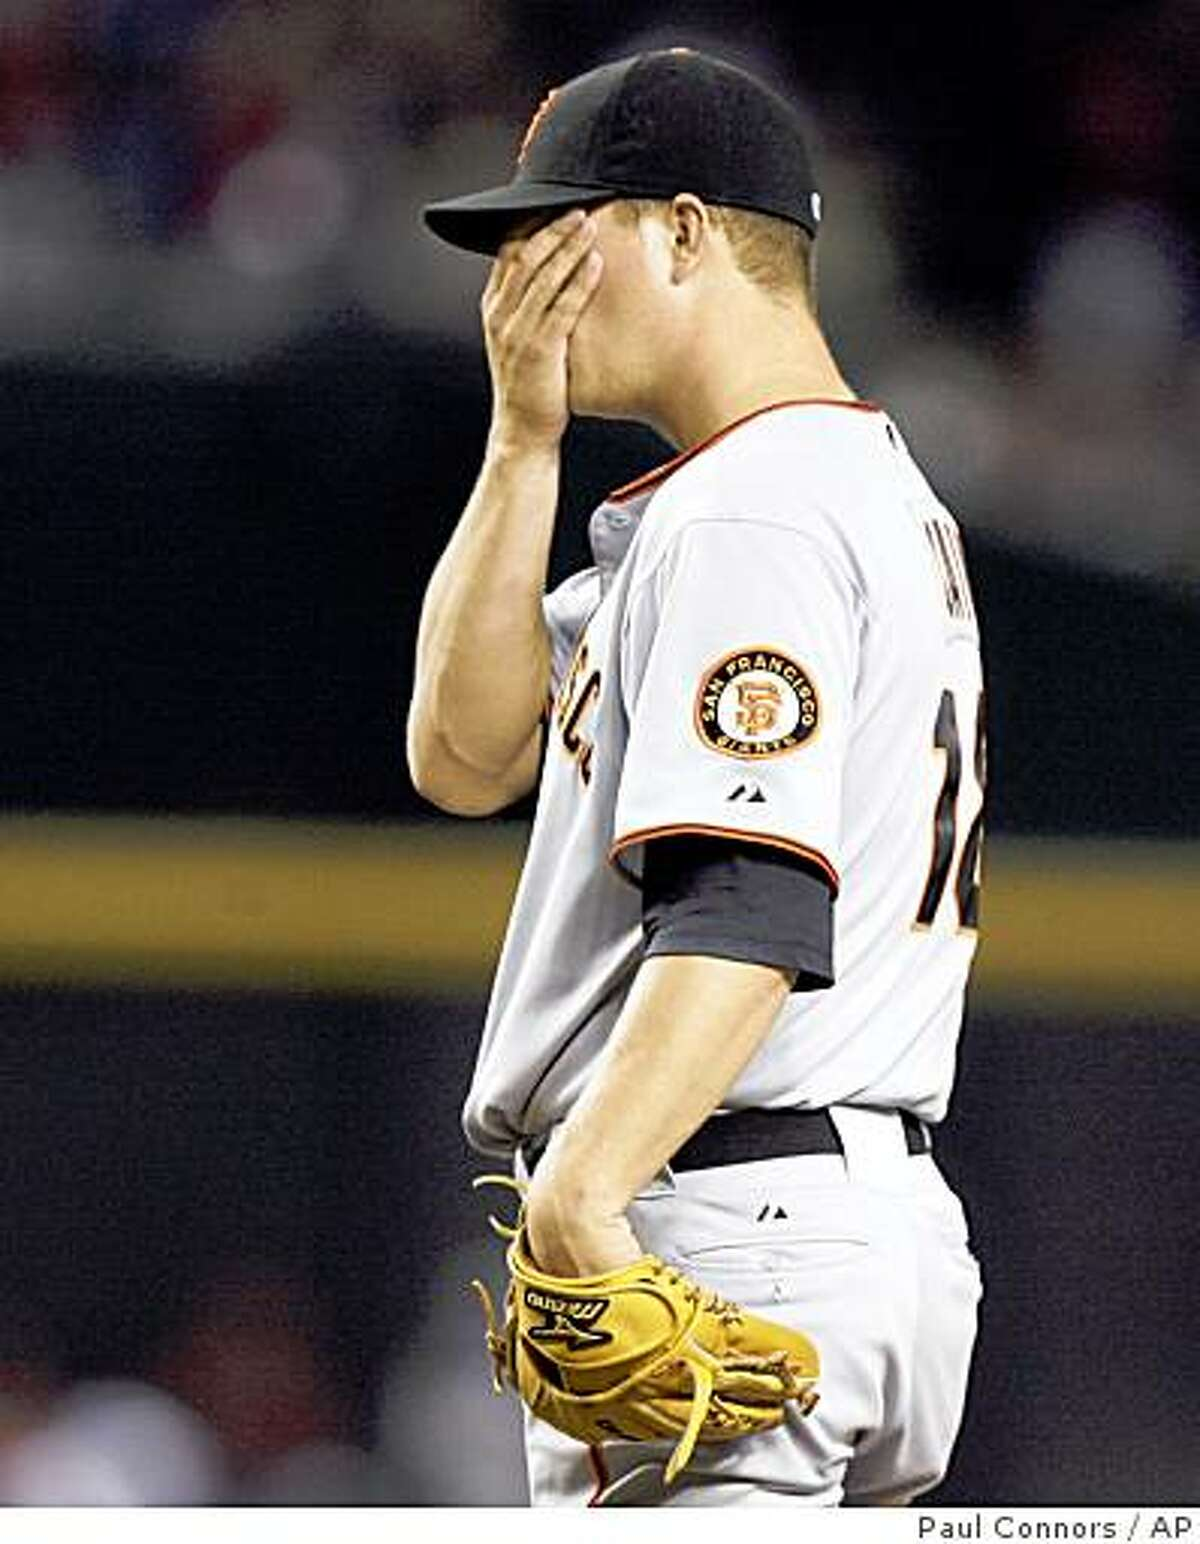 San Francisco Giants' Matt Cain reacts to giving up a solo home run to Arizona Diamondbacks' Chris Snyder in the third inning of a baseball game, Tuesday, Sept. 16, 2008, in Phoenix. (AP Photo/Paul Connors)